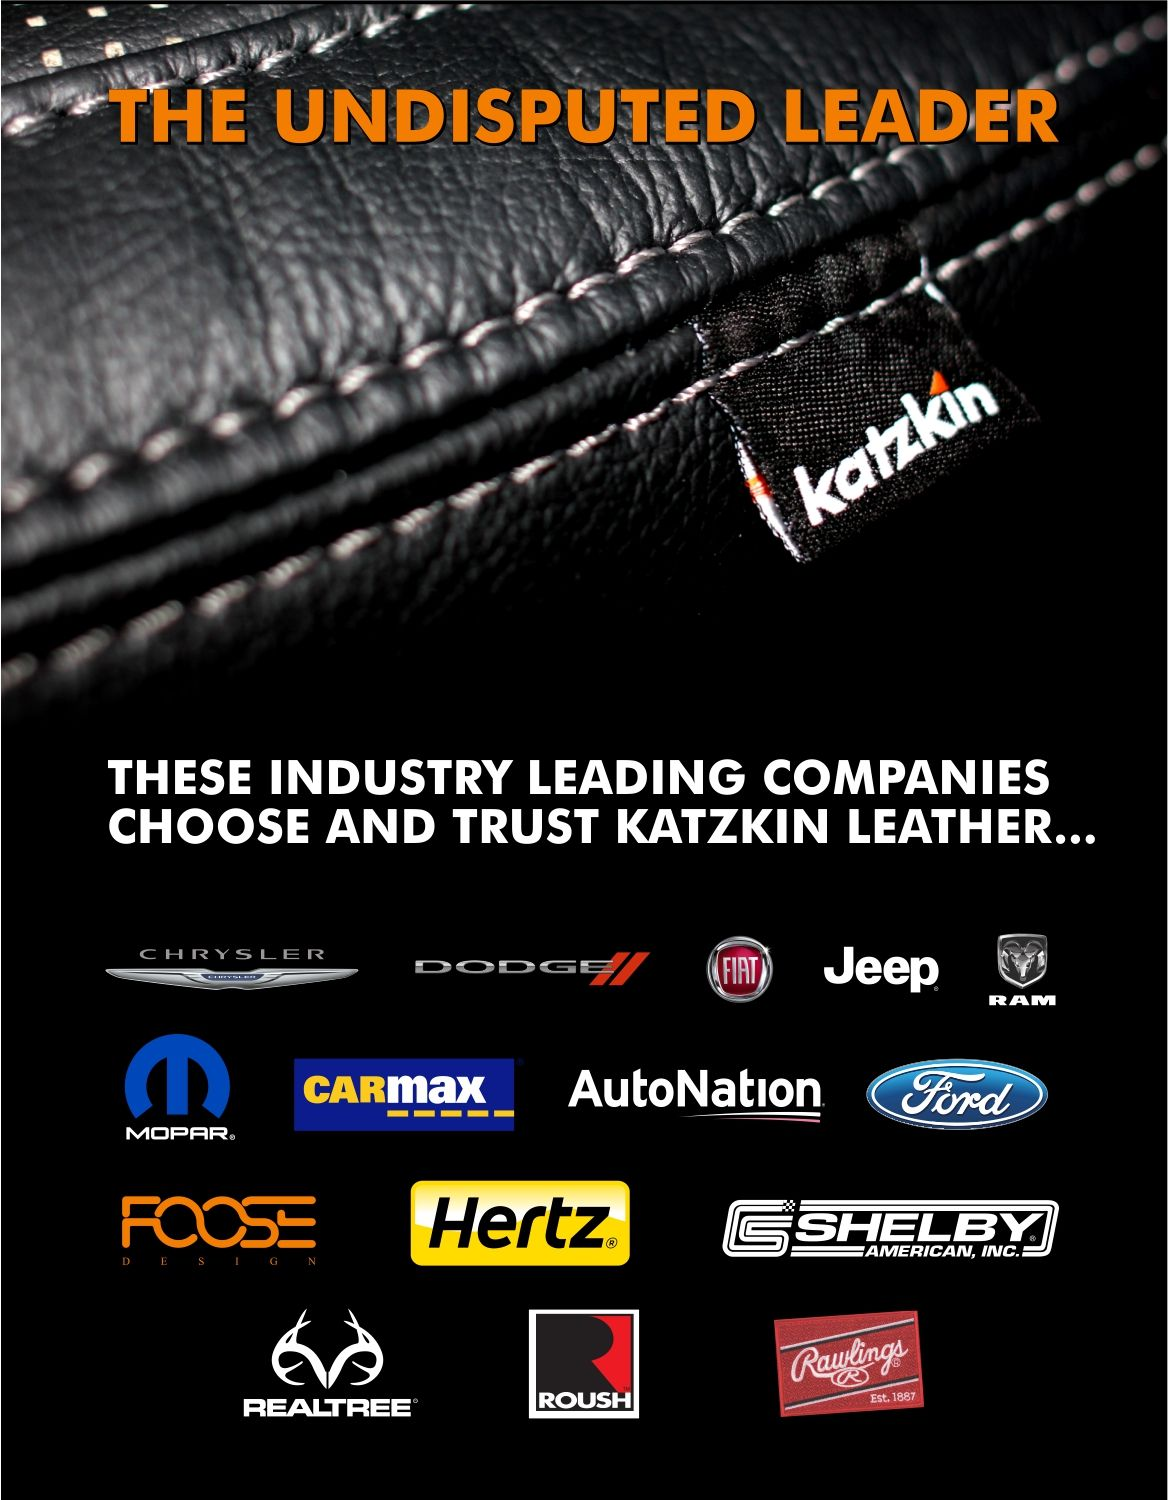 THE LEADER IN CUSTOM AUTOMOTIVE LEADER